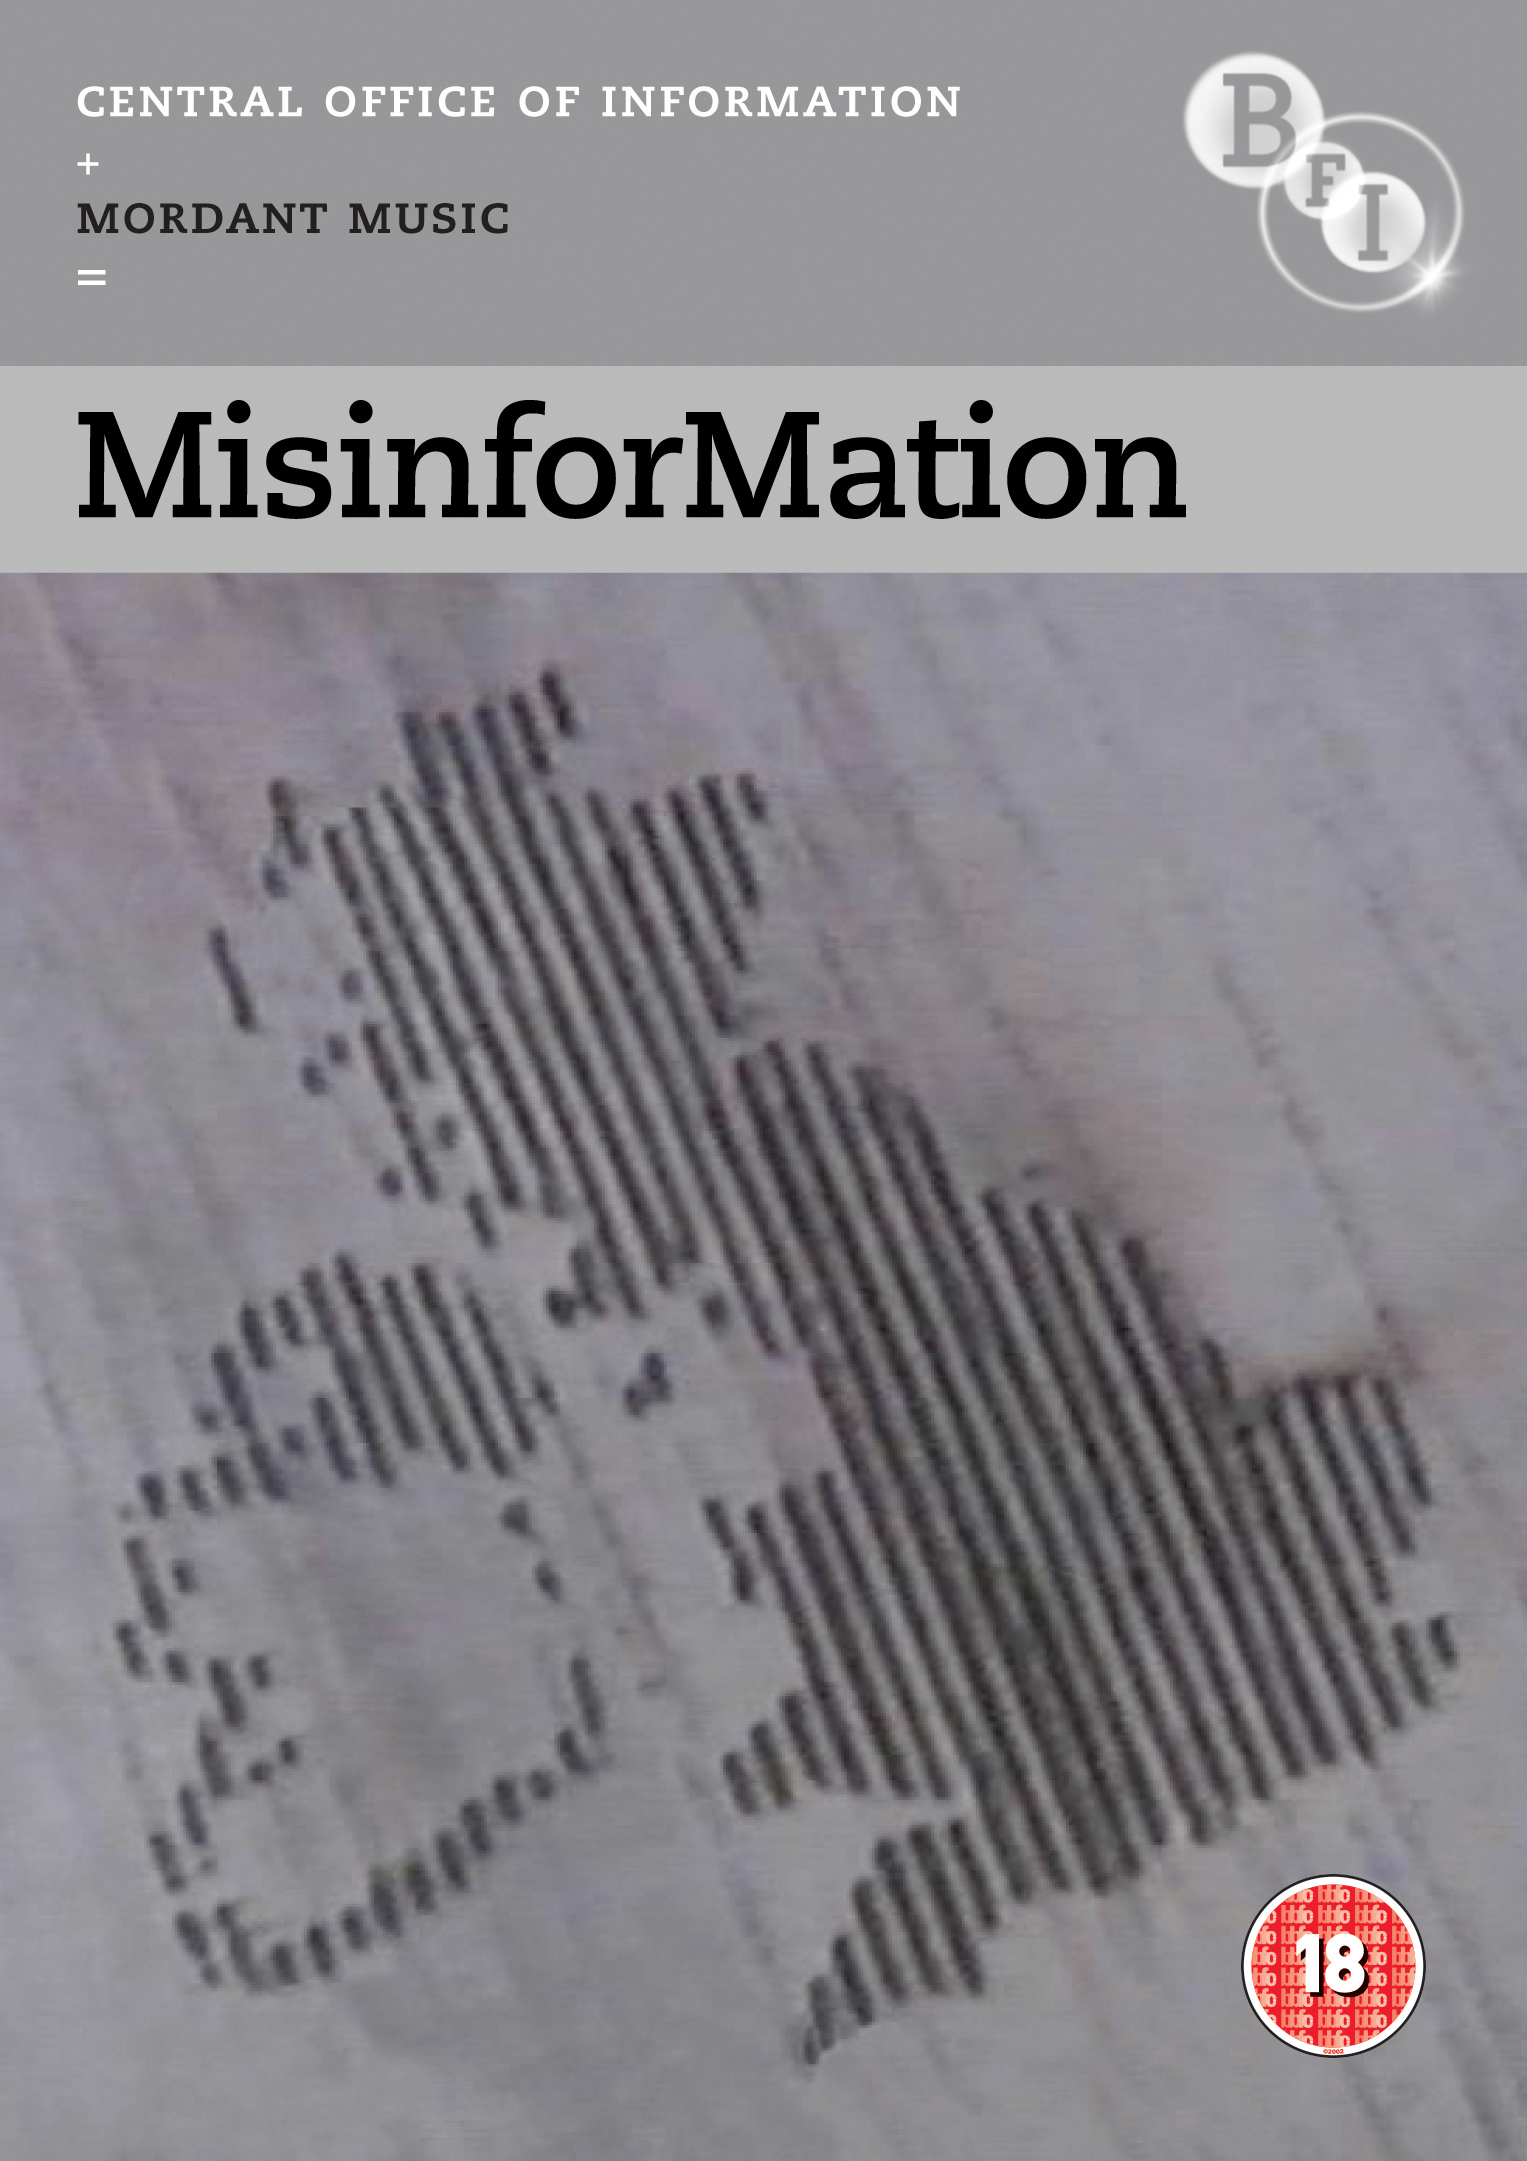 coi_misinformation_1